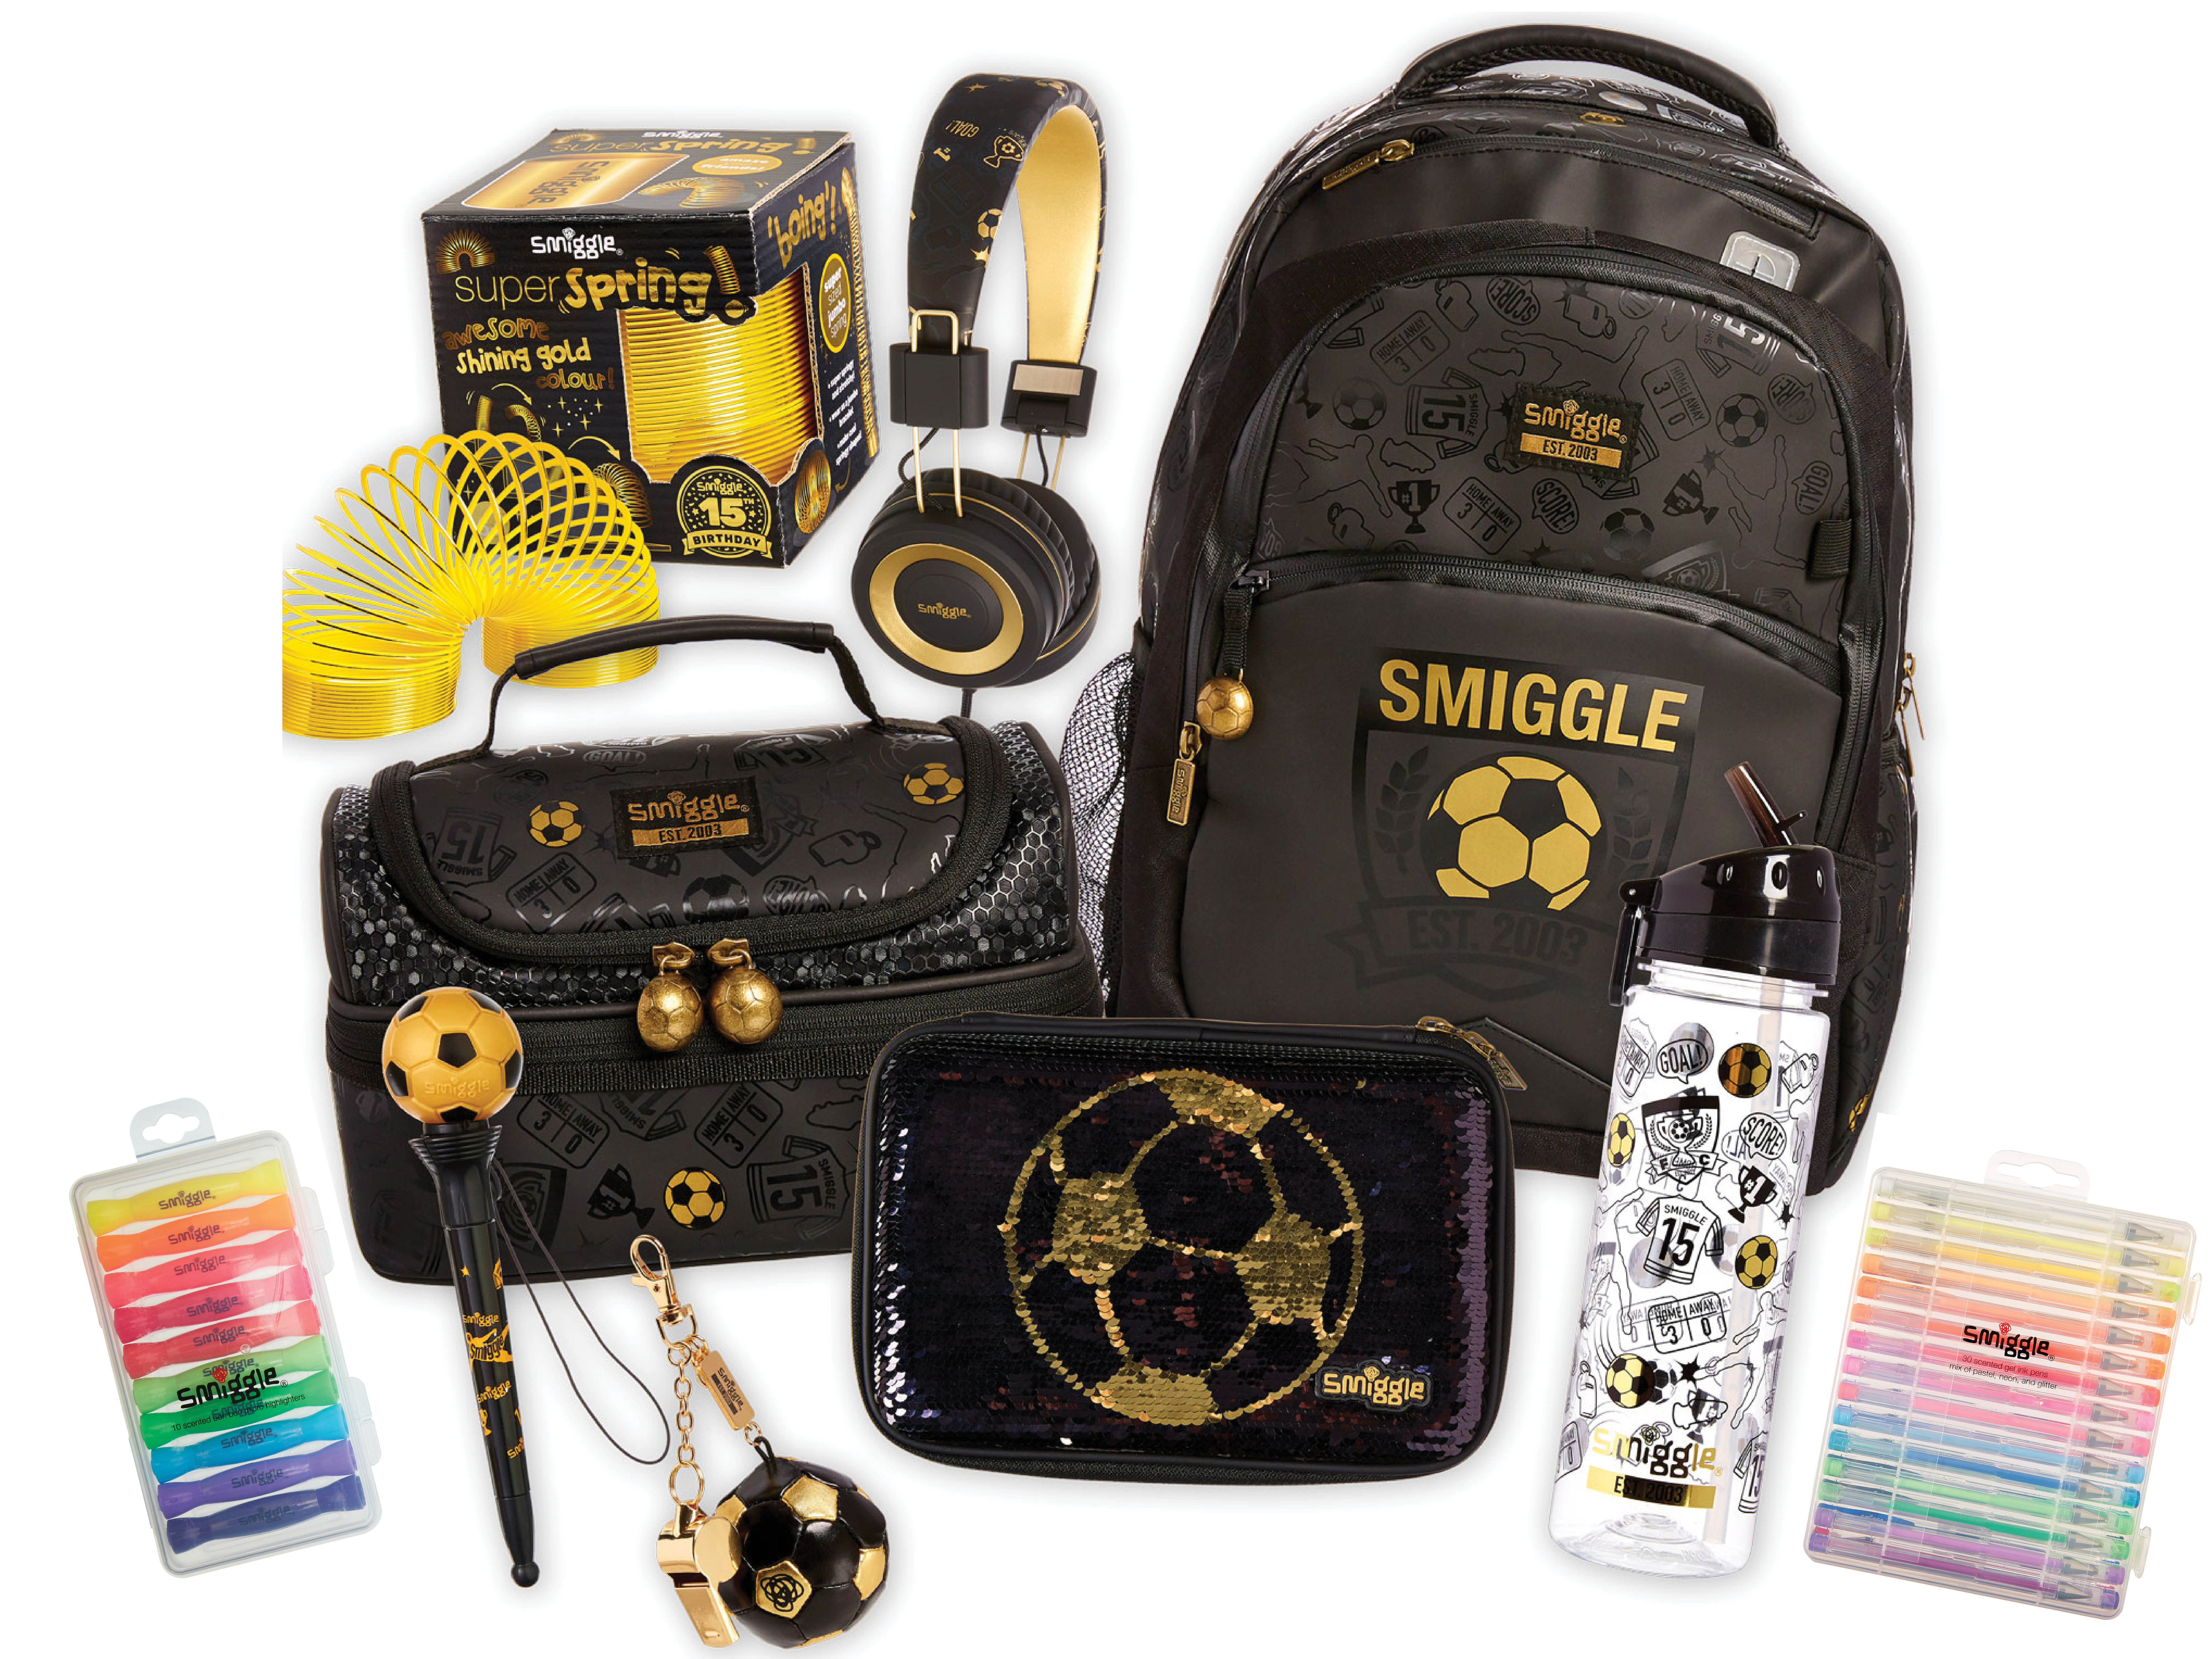 Smiggle 15th bday  sweepstakes